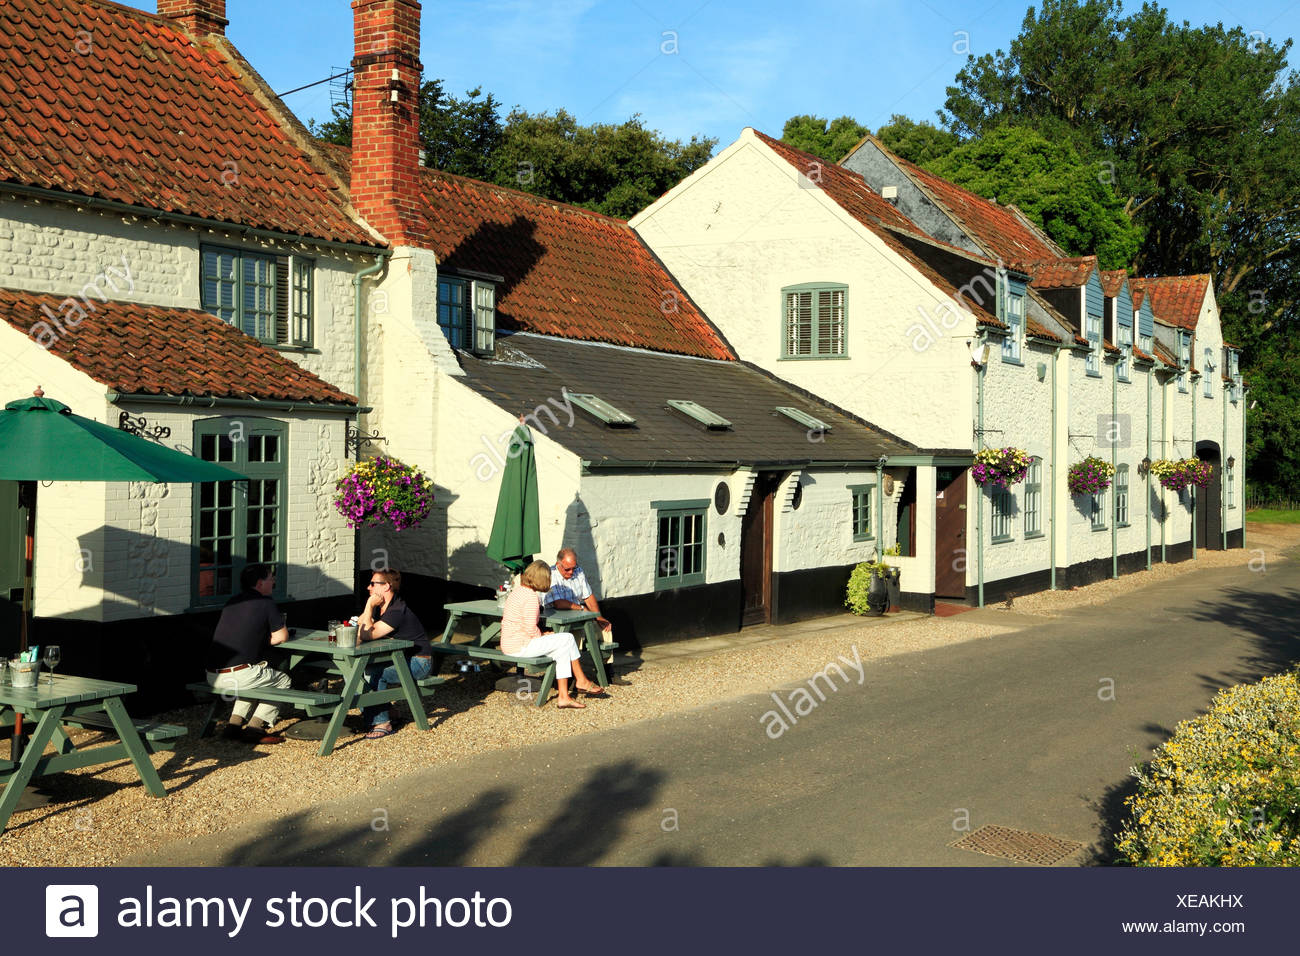 Thornham, Norfolk, The Lifeboat Inn, pub public house popular pubs inn inns England UK English country coastal people sitting - Stock Image